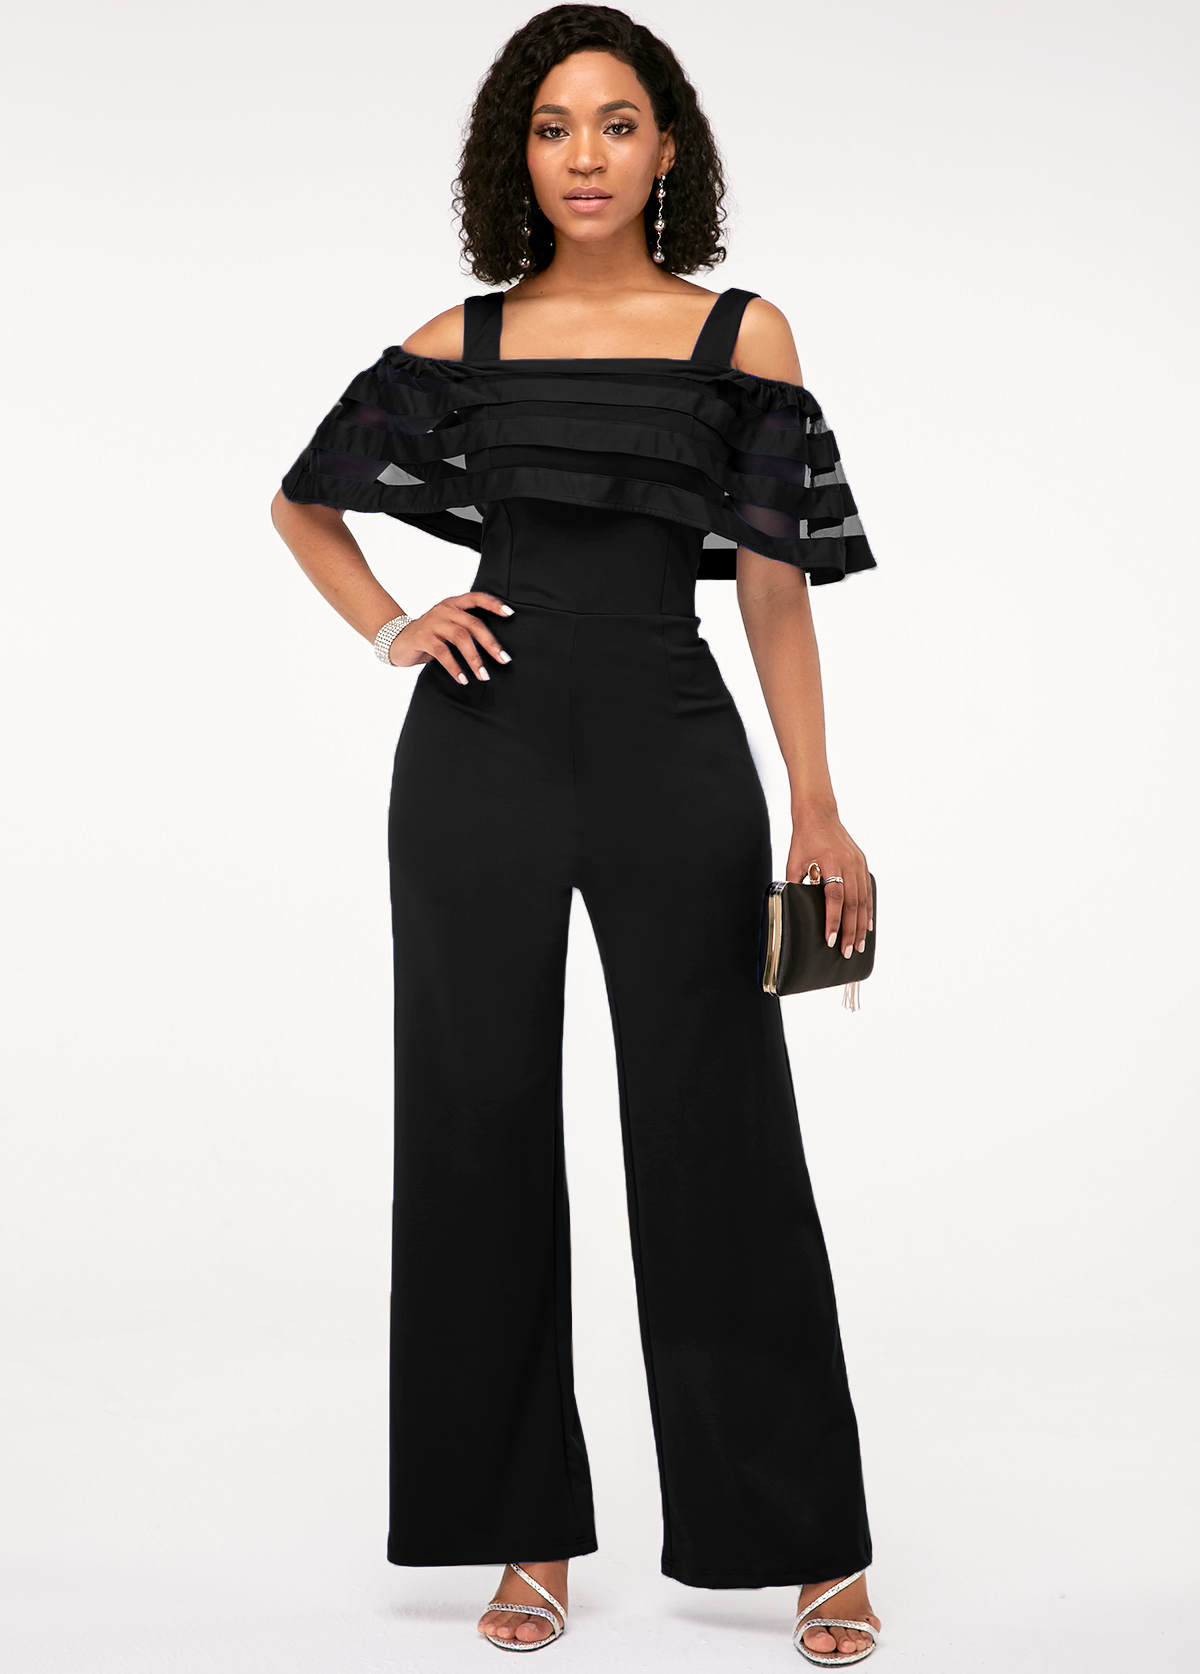 Strappy Cold Shoulder Black Ruffle Overlay Jumpsuit